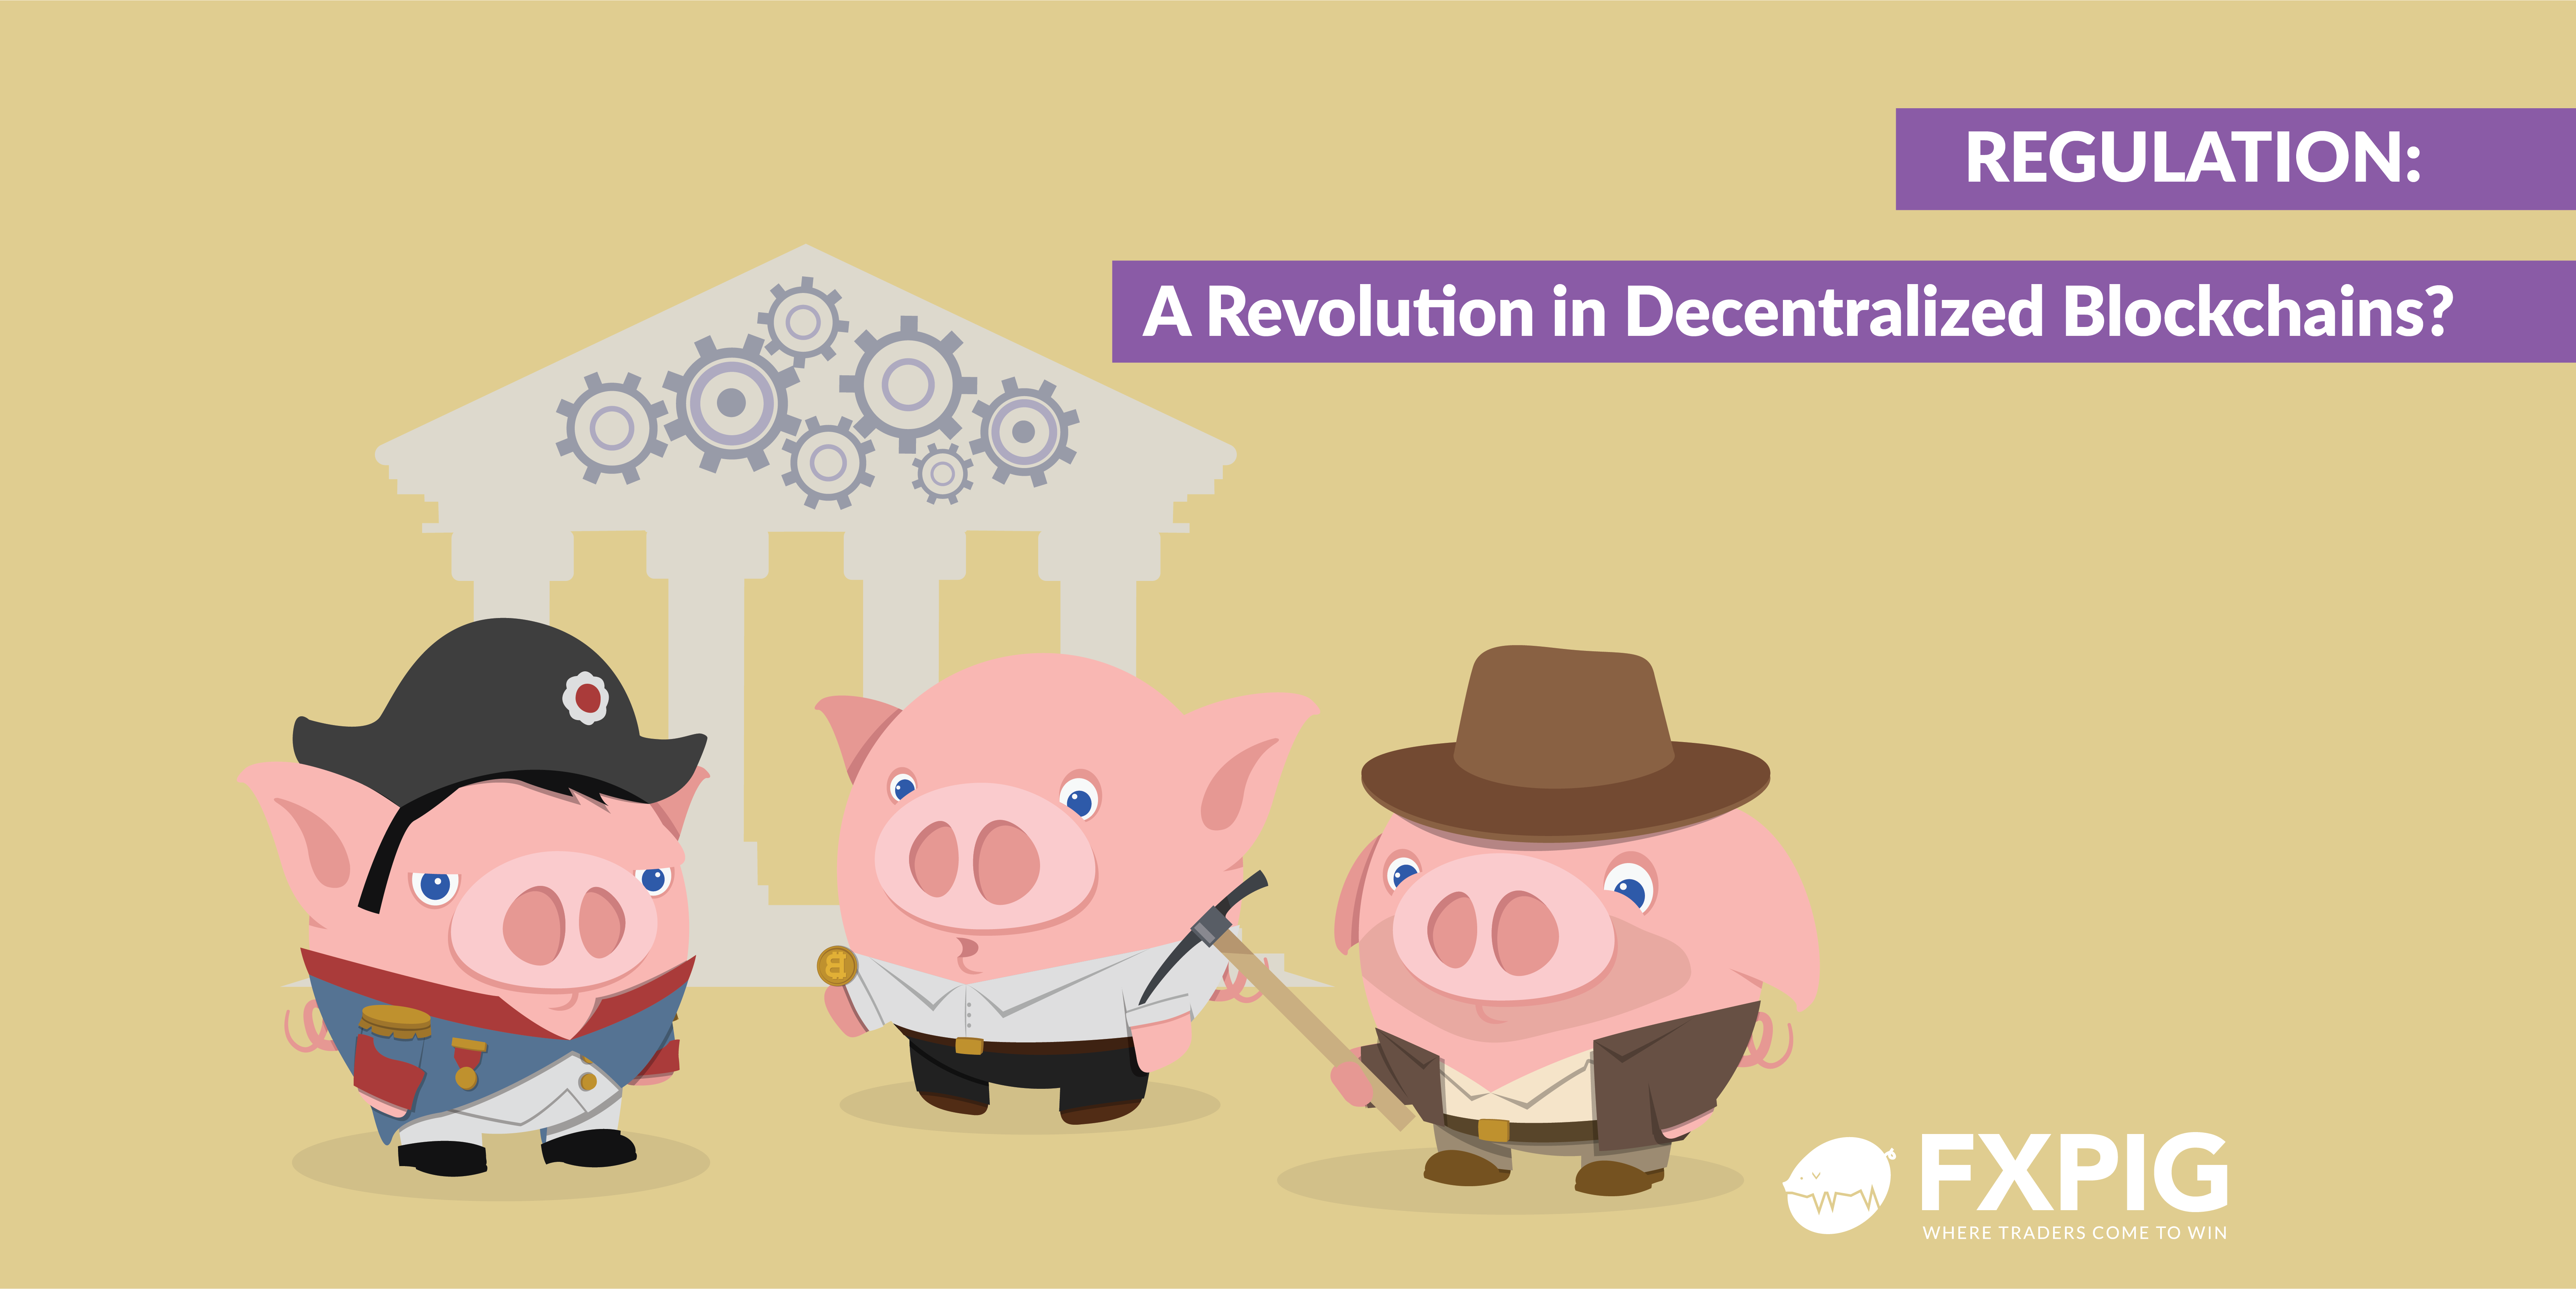 FOREX_Mr-Markets_decentralization-of-blockchains_regulation_FXPIG